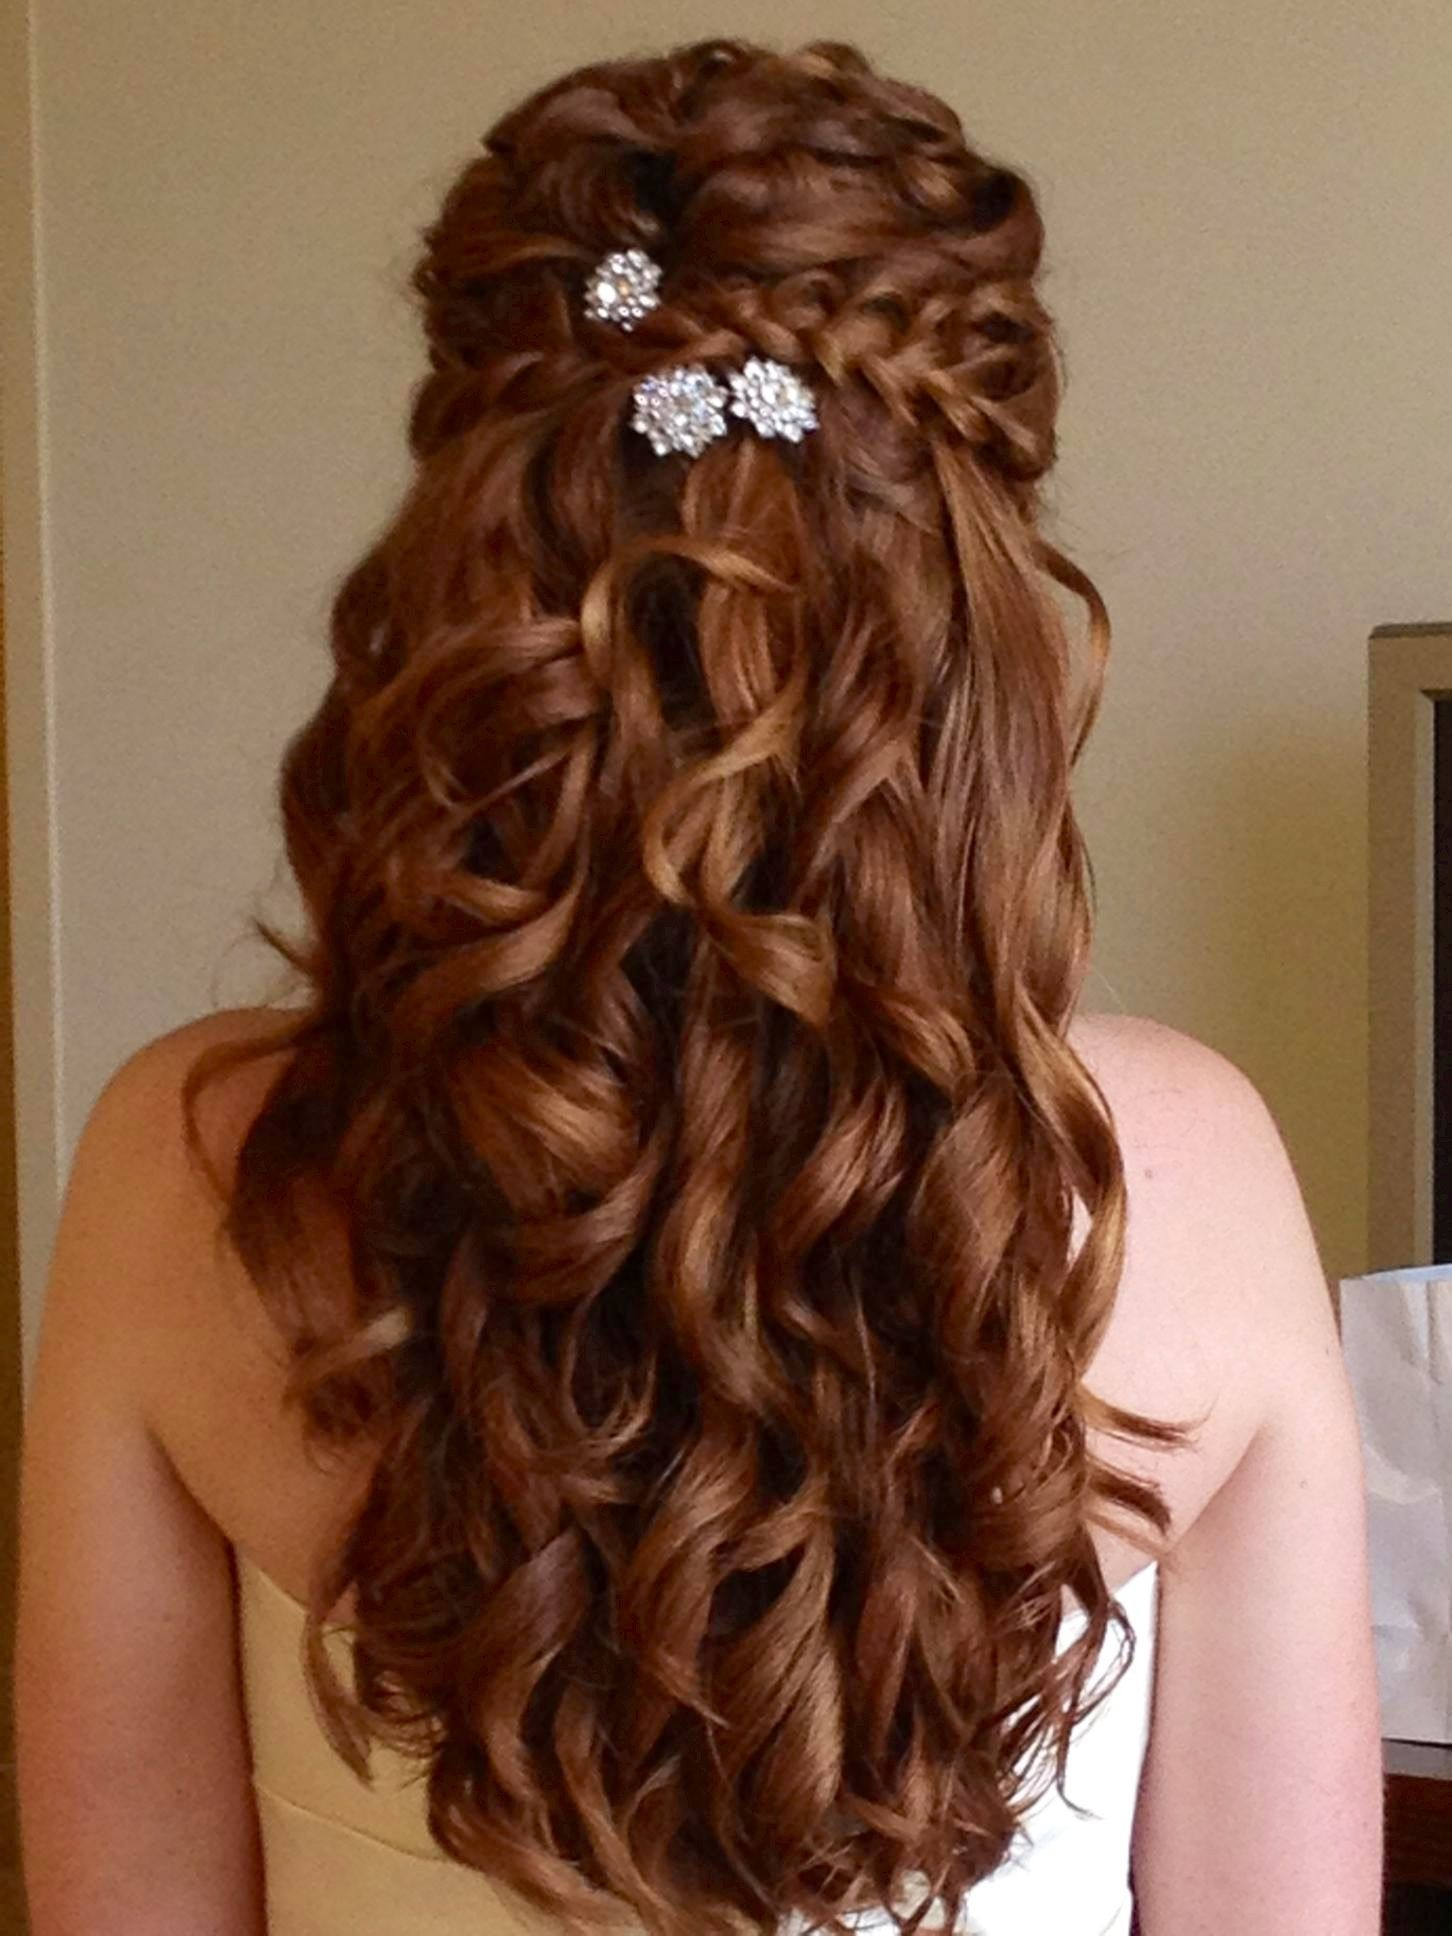 My Sisters Wedding Day Hair By Beyond Reflections Salon In Sarasota Fl Hair Styles Princess Hairstyles Hair